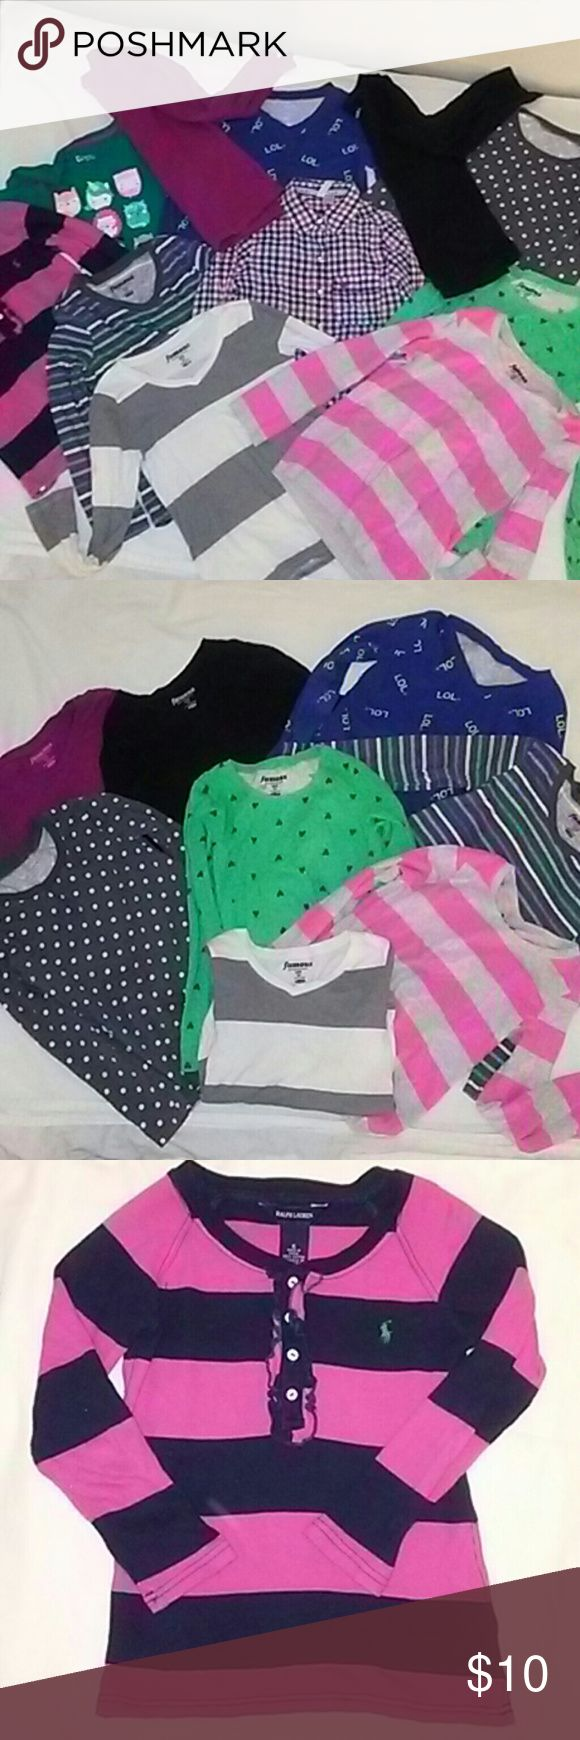 Girls Tops size 6..6x..7 All 11 sold together $10$ 8 Old navy shirts sizes (6-7), 1 Ralph lauren pink and blue strip shirt size (6) and 2 shirts from Target white,blue and pink plaid button down size (7)  and a turquoise tops with 9 different animal faces on it size (6\6x)  No Holes No Rips Smoke free pet free home. Take all for a great price !!!!!! Shirts are all long sleeves!!!!! Shirts & Tops